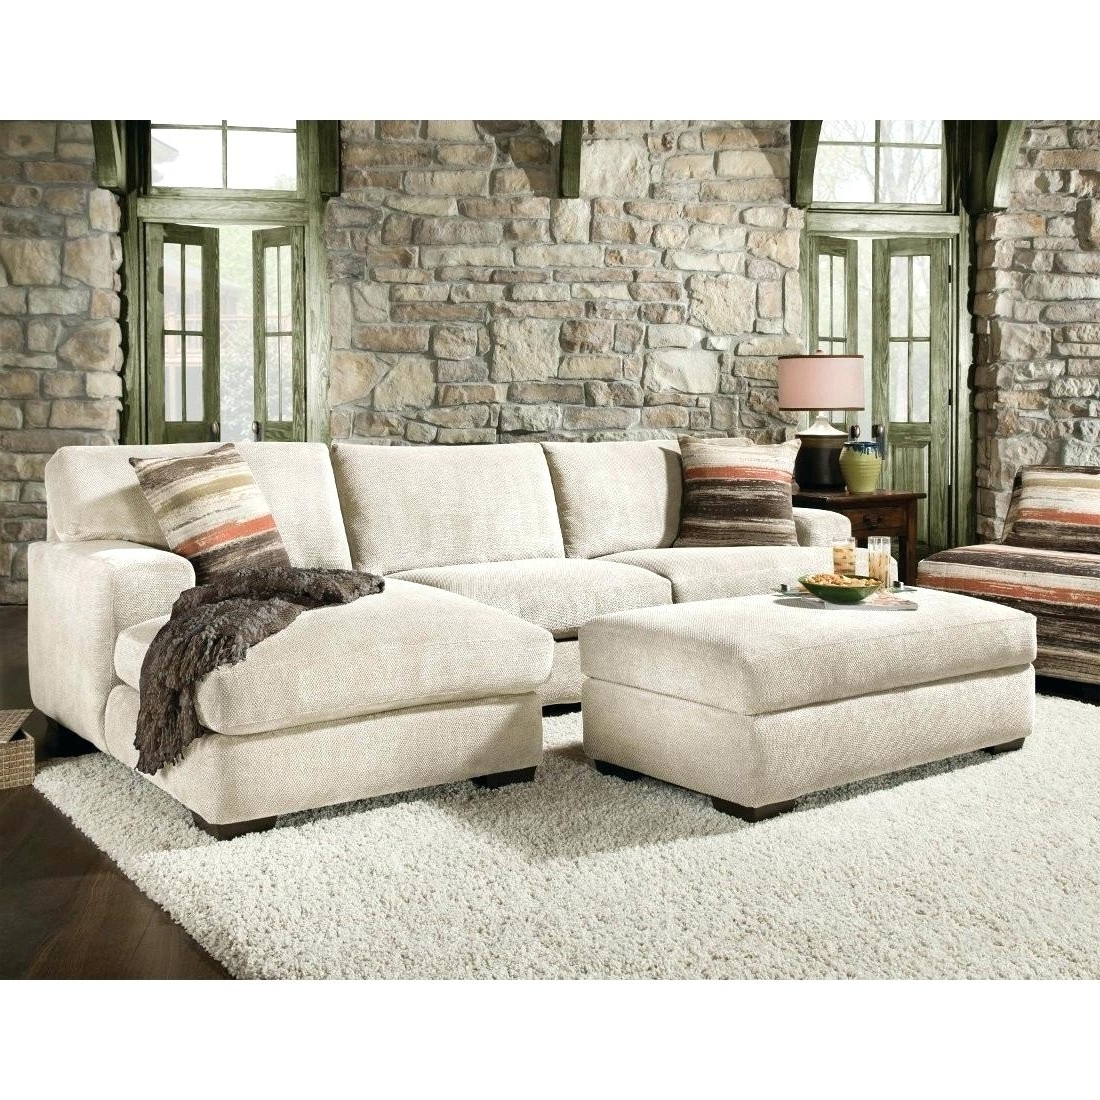 Small Sectional Sofas With Chaise And Ottoman In Famous Small Sectional Sofa With Chaise And Ottoman No (View 10 of 15)